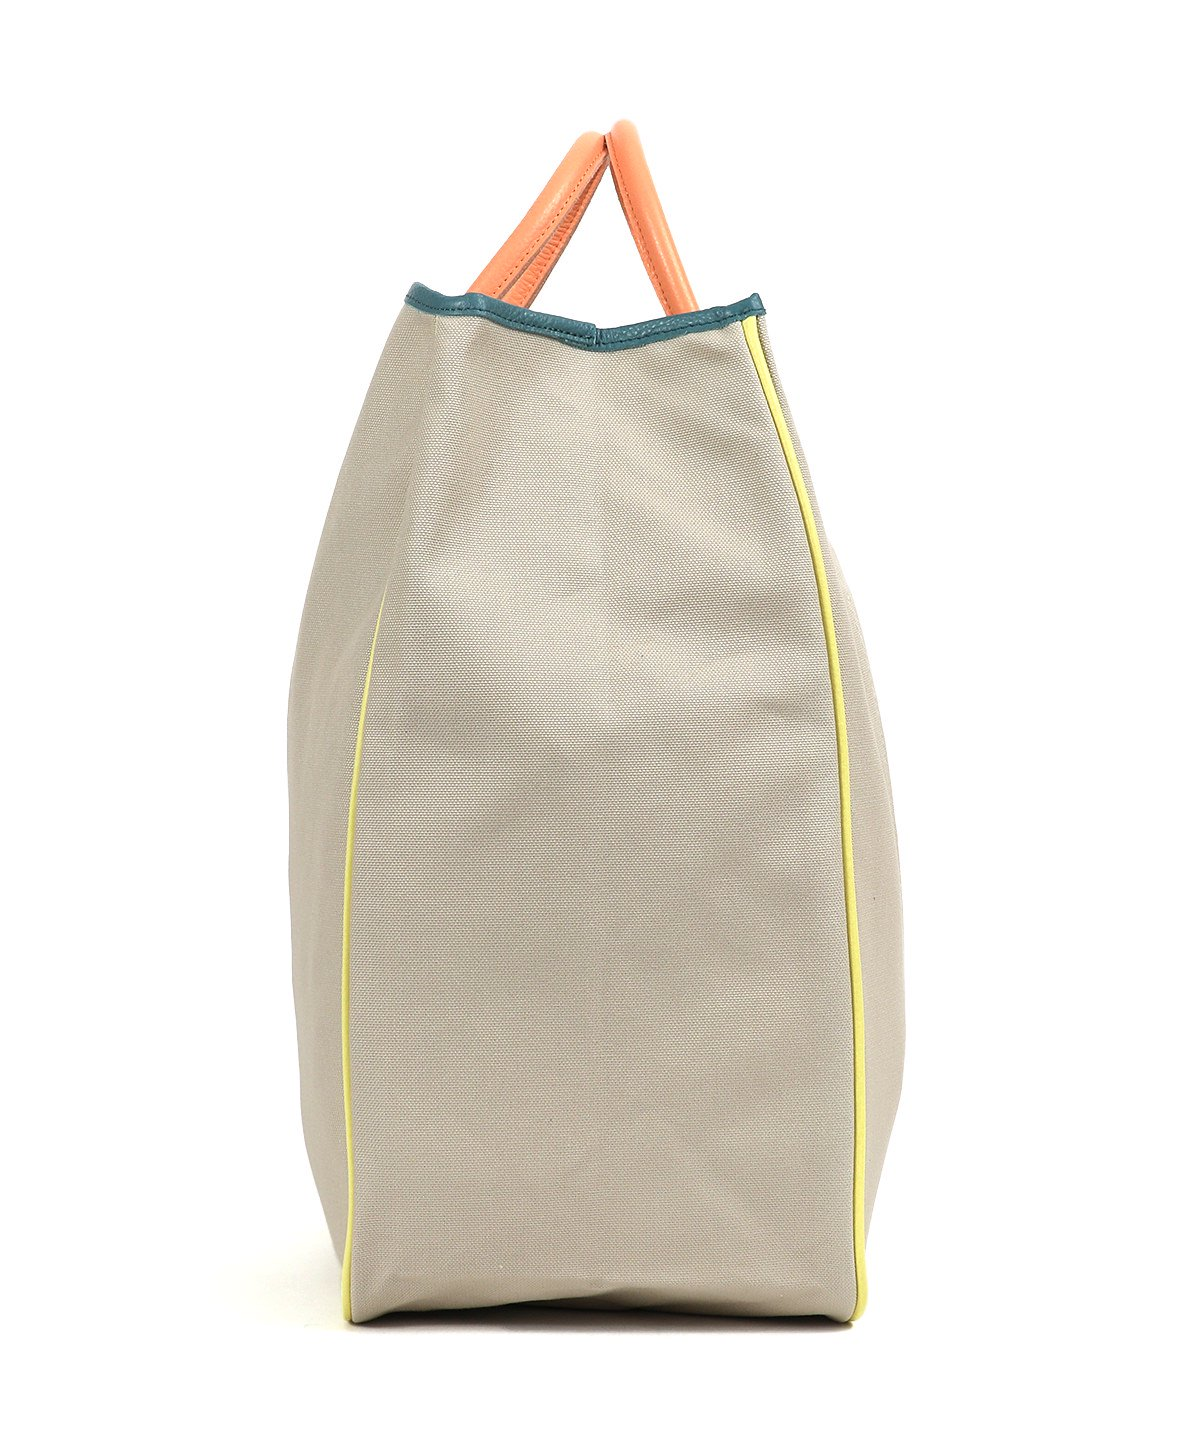 CANVAS CARRYALL TOTE MULTI